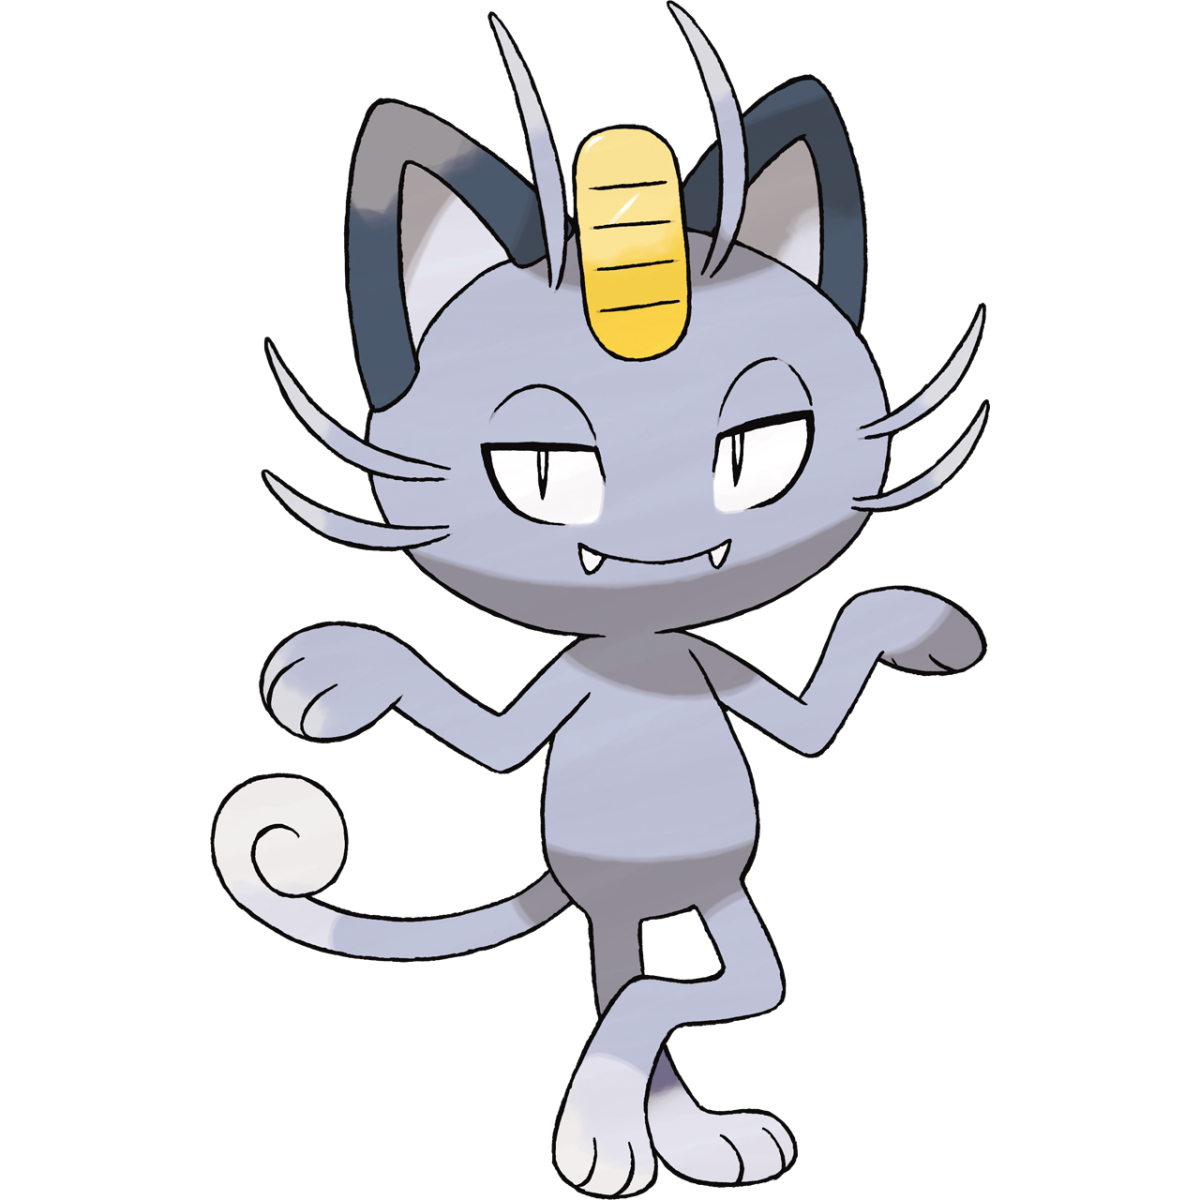 Alolan Meowth, official art by Ken Sugimori